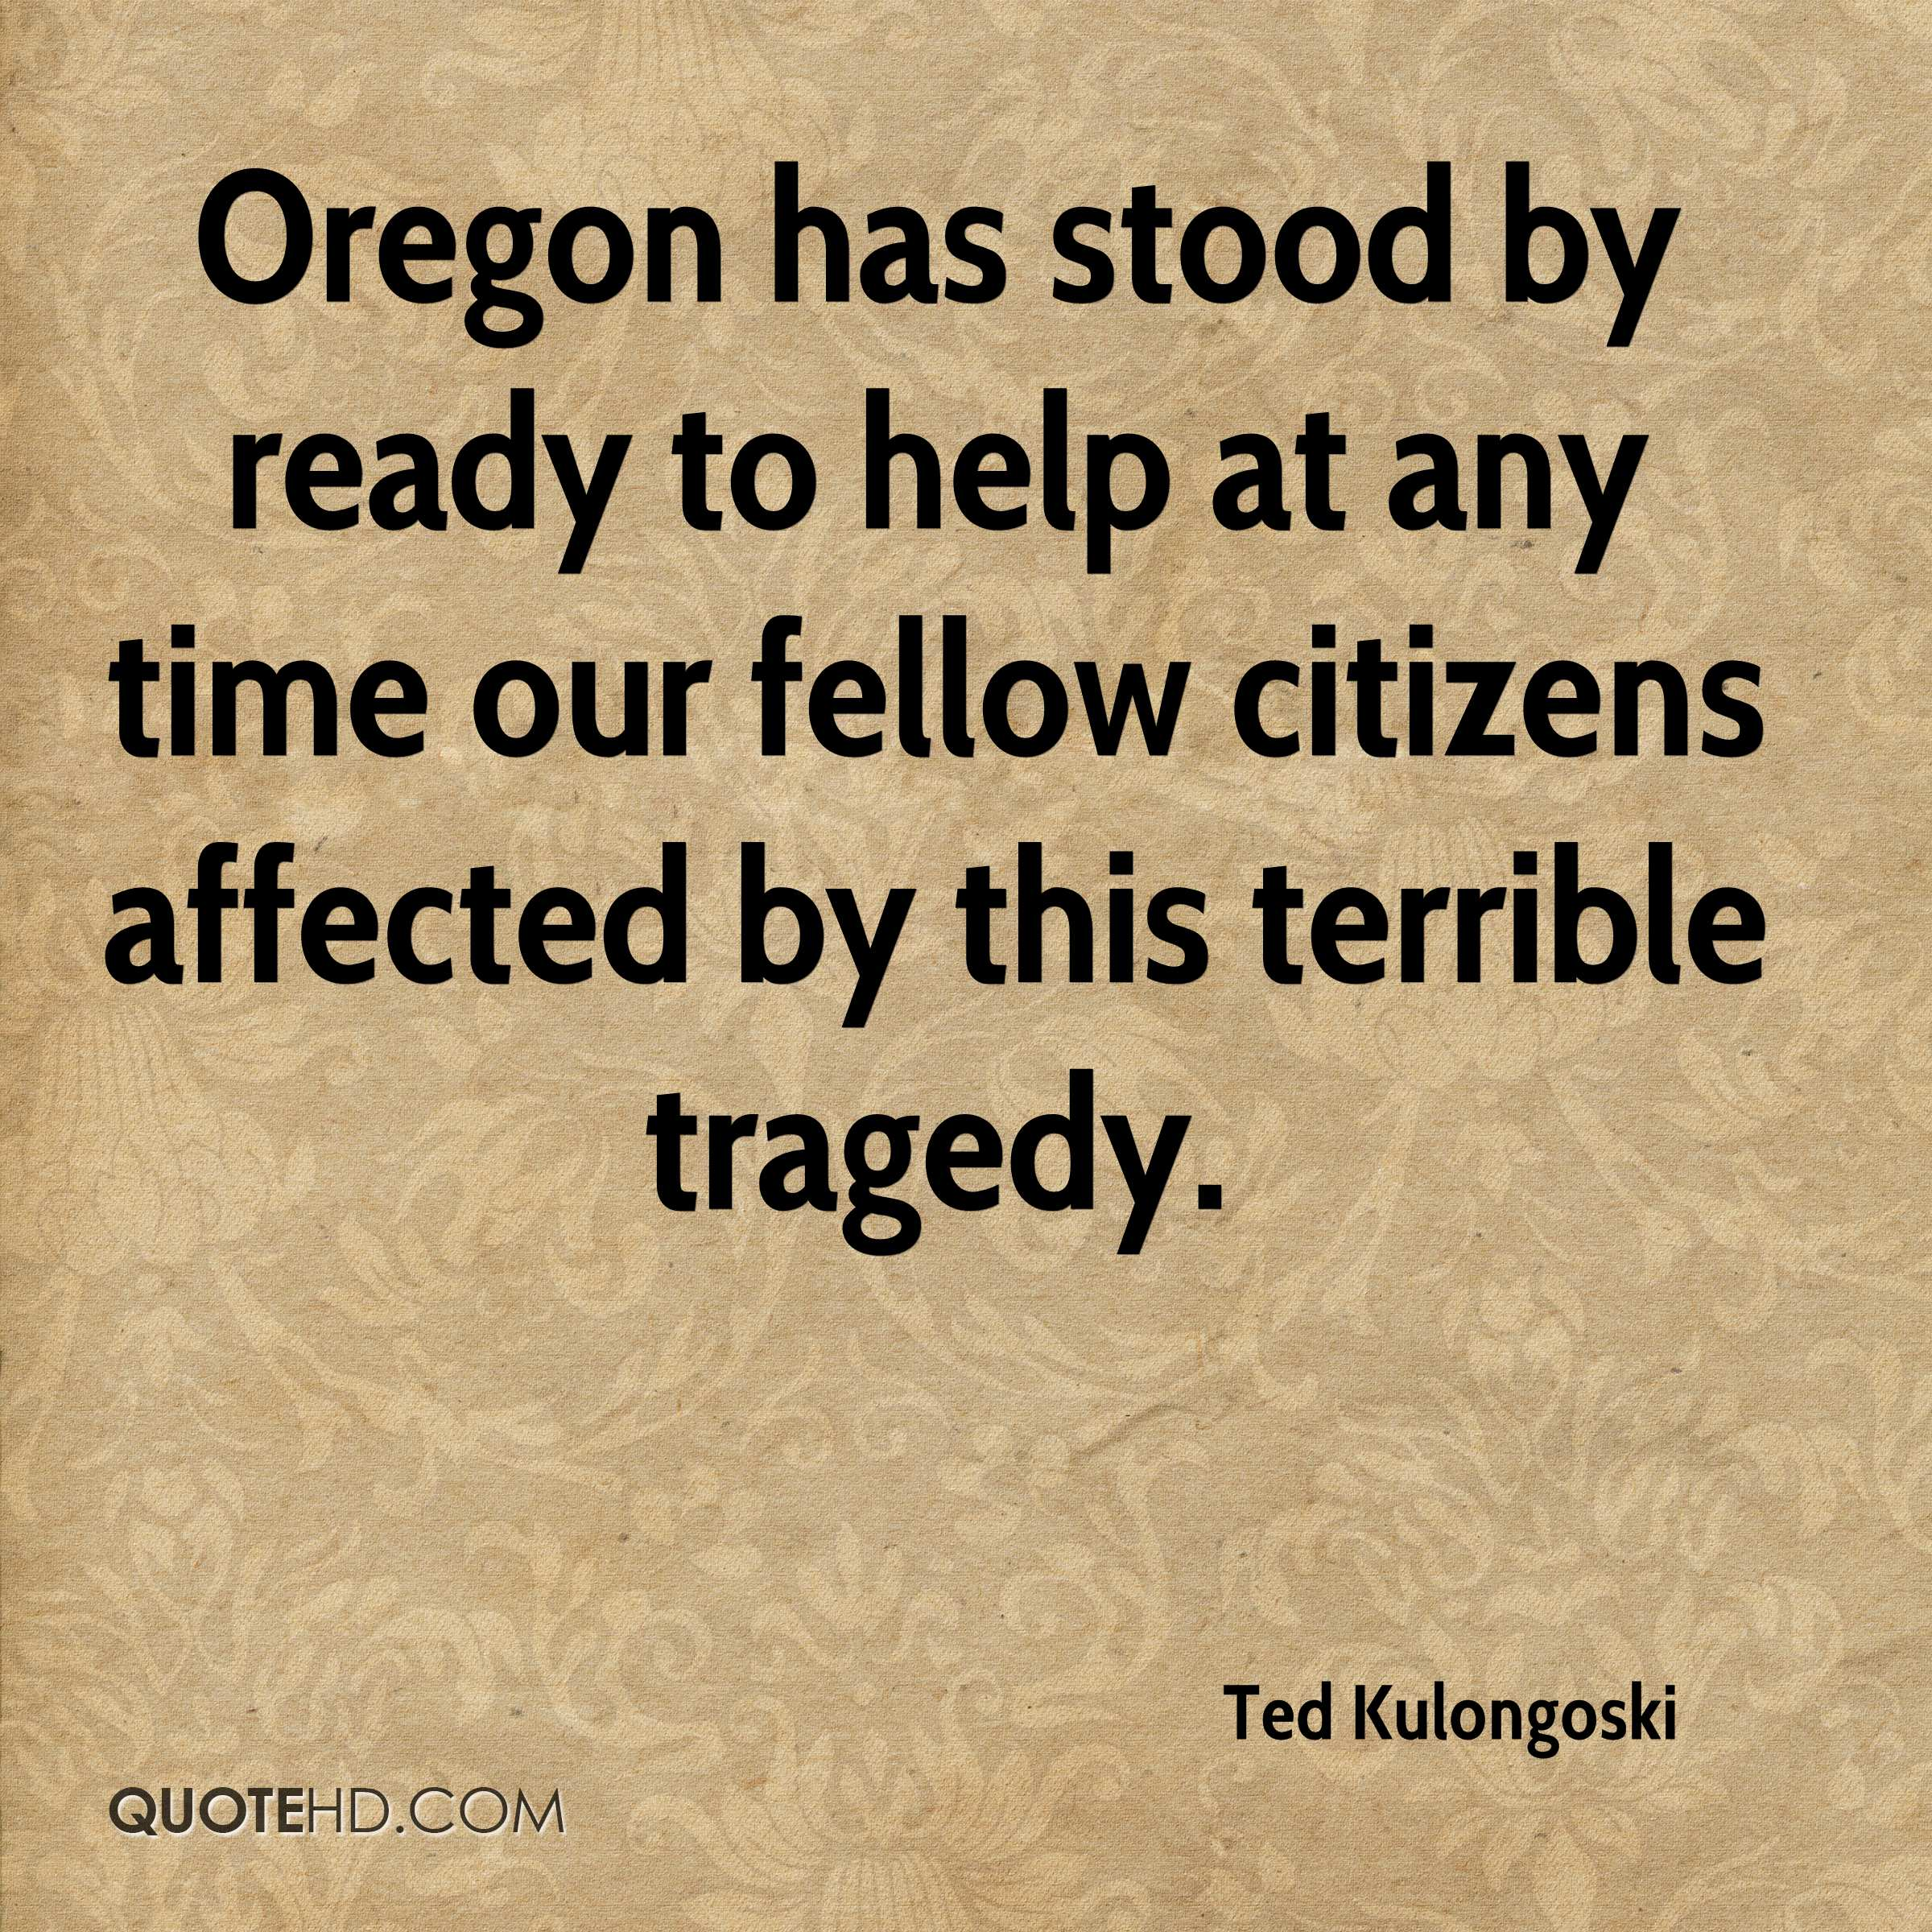 Oregon has stood by ready to help at any time our fellow citizens affected by this terrible tragedy.